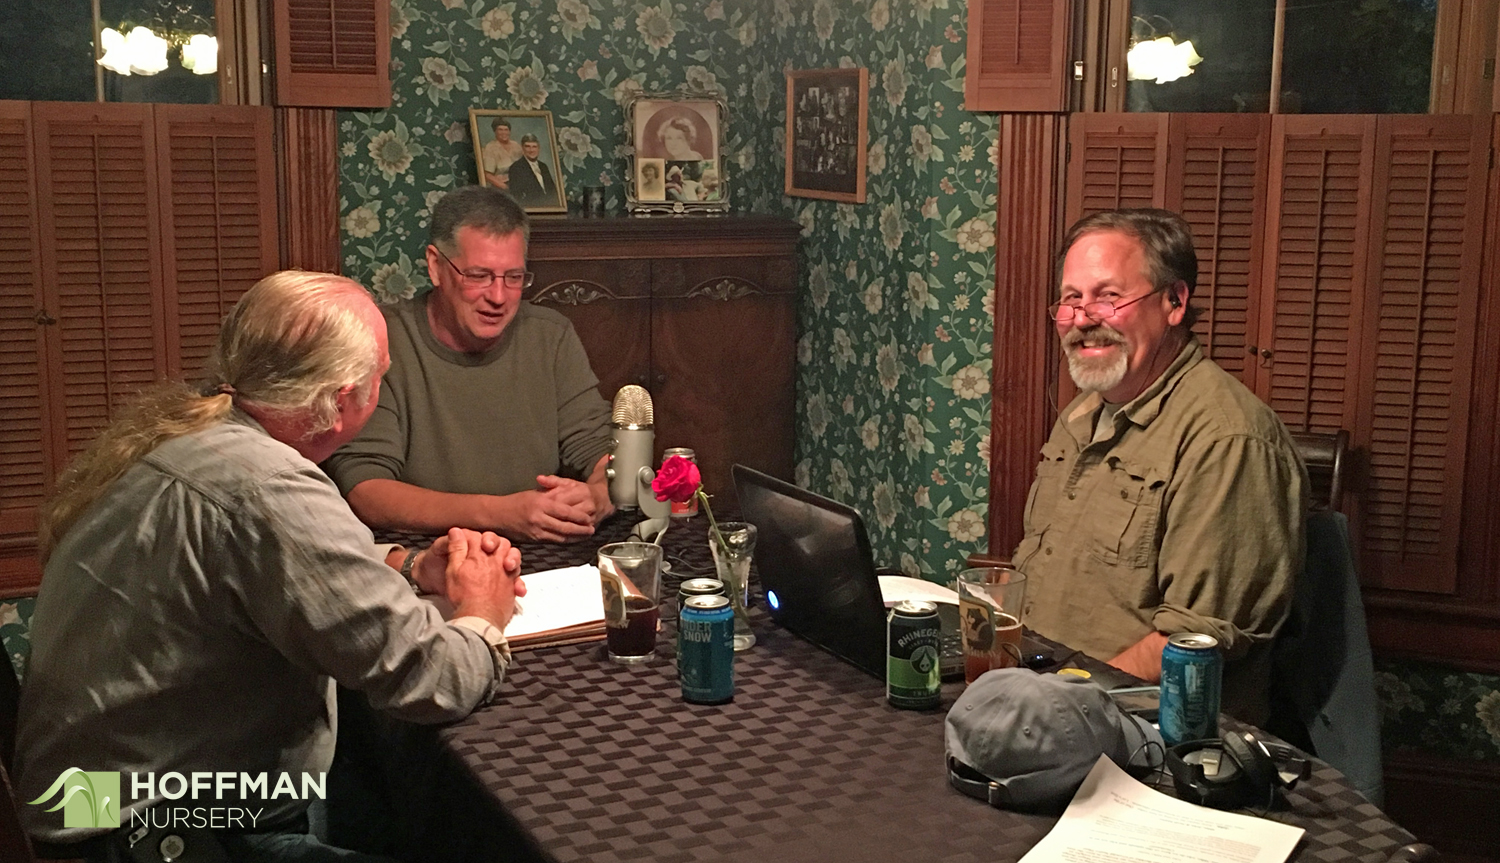 John Magee (R) and Mike Berkley (L) interview Brian Jorg about the Zoo's native plant gardens.